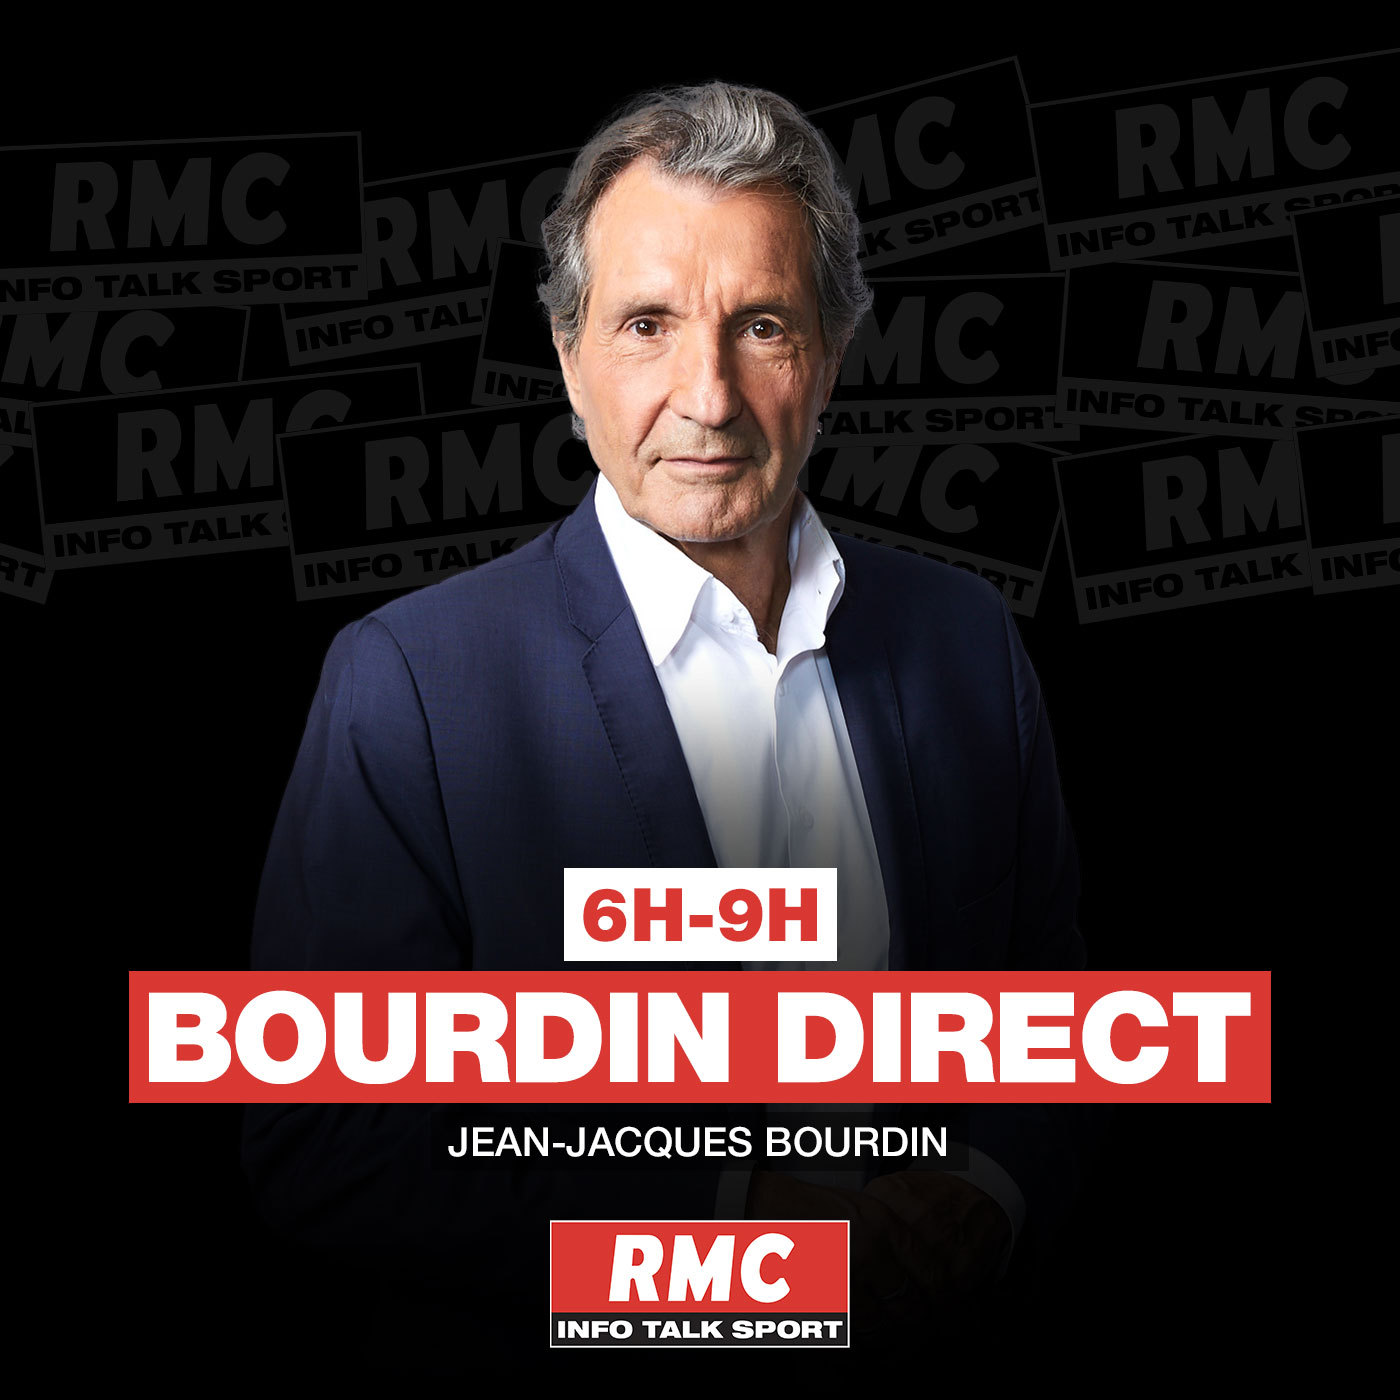 RMC - Bourdin Direct - Jean Jacques Bourdin